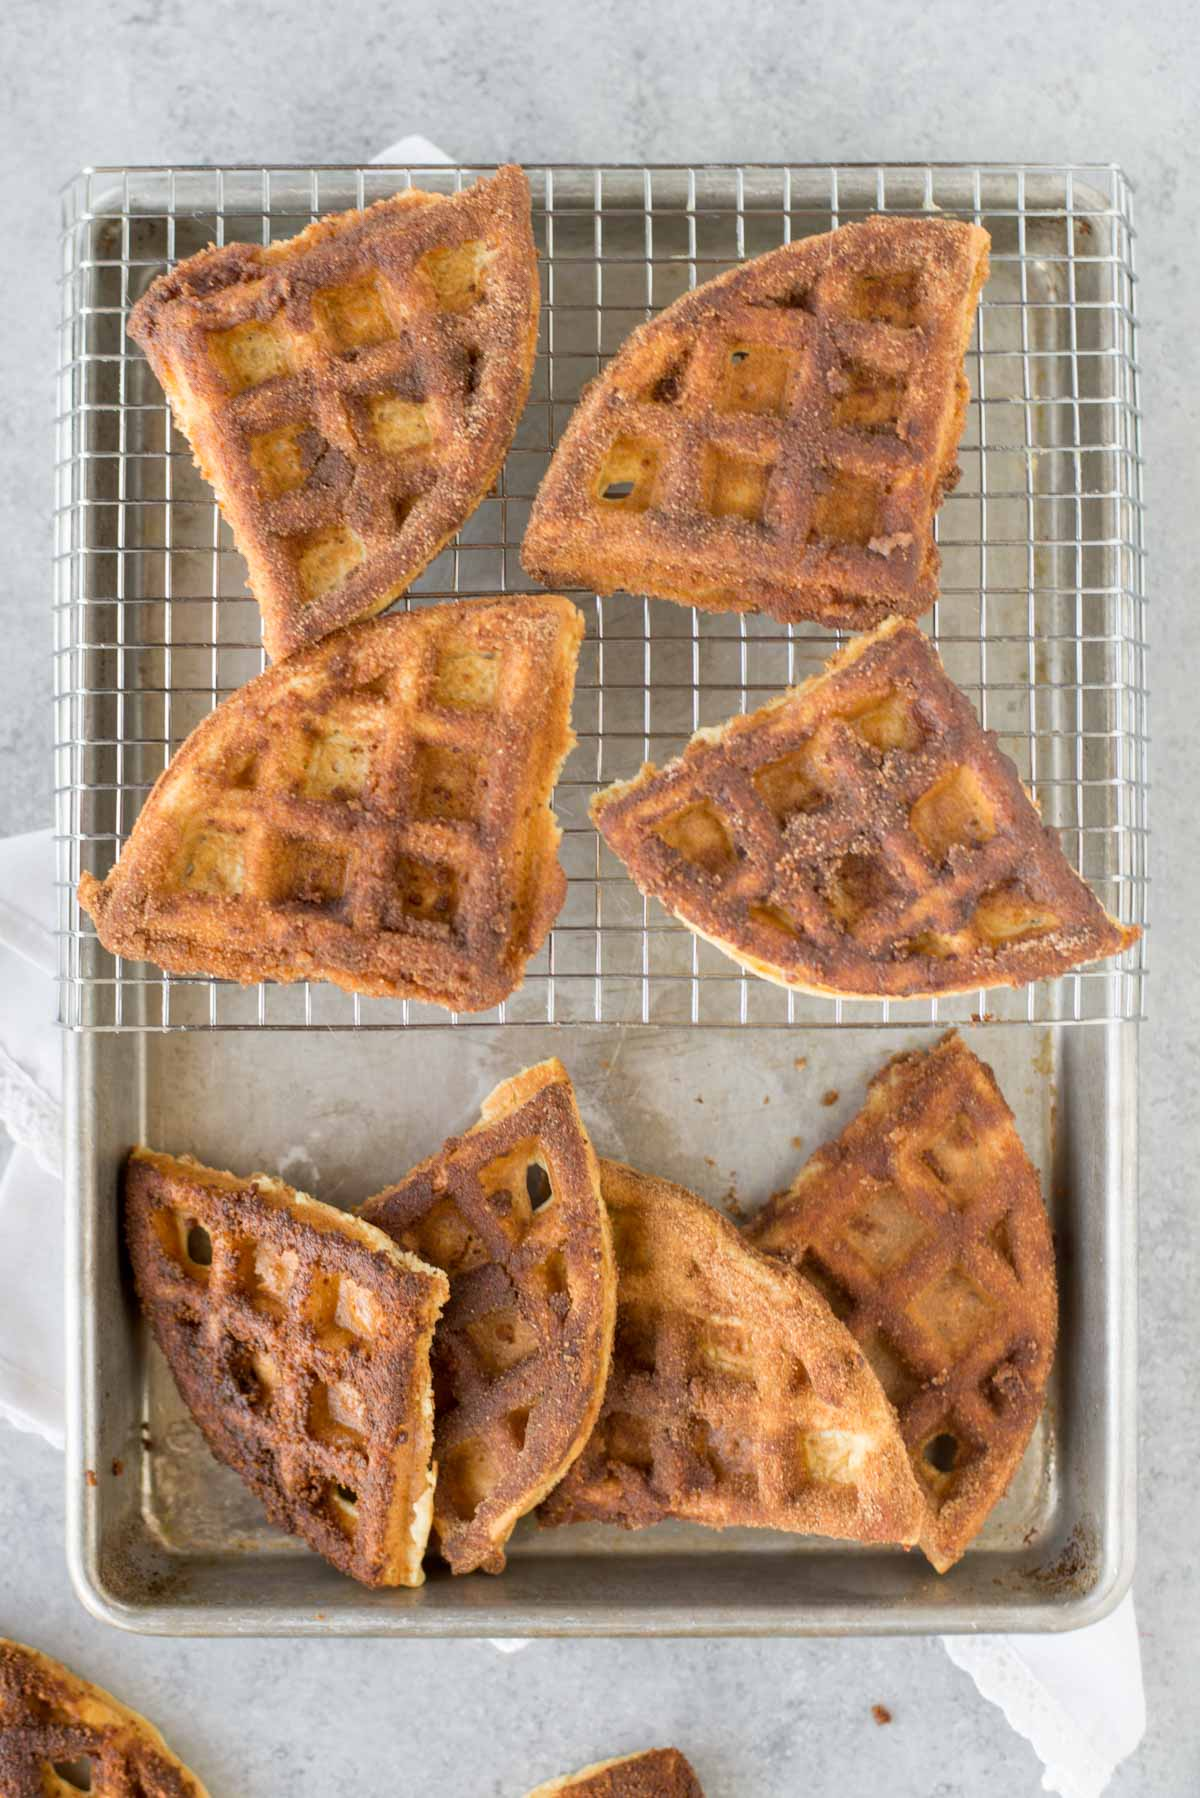 The quick blender protein waffles make the perfect breakfast and spice them up with cinnamon and sugar.